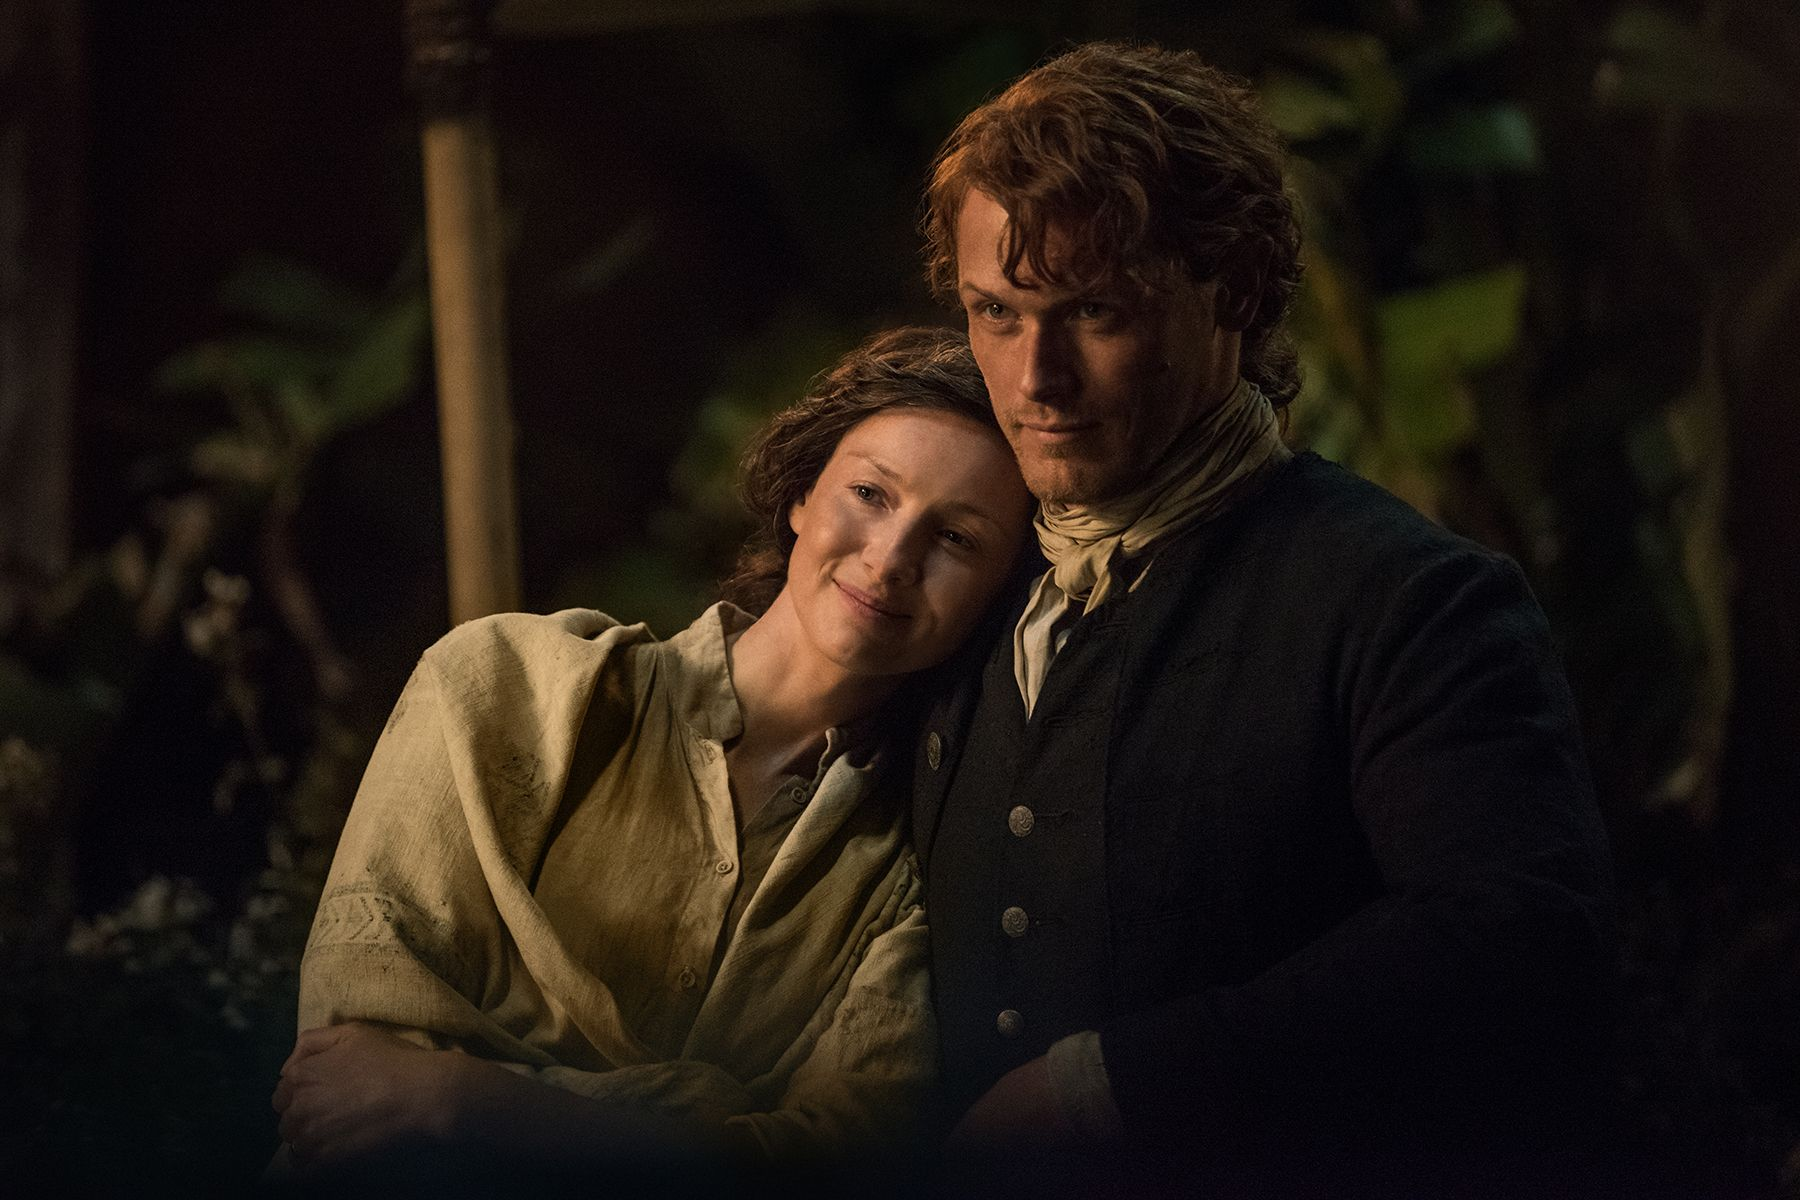 Outlander Season 5 & Outlander Season 6 Confirmed